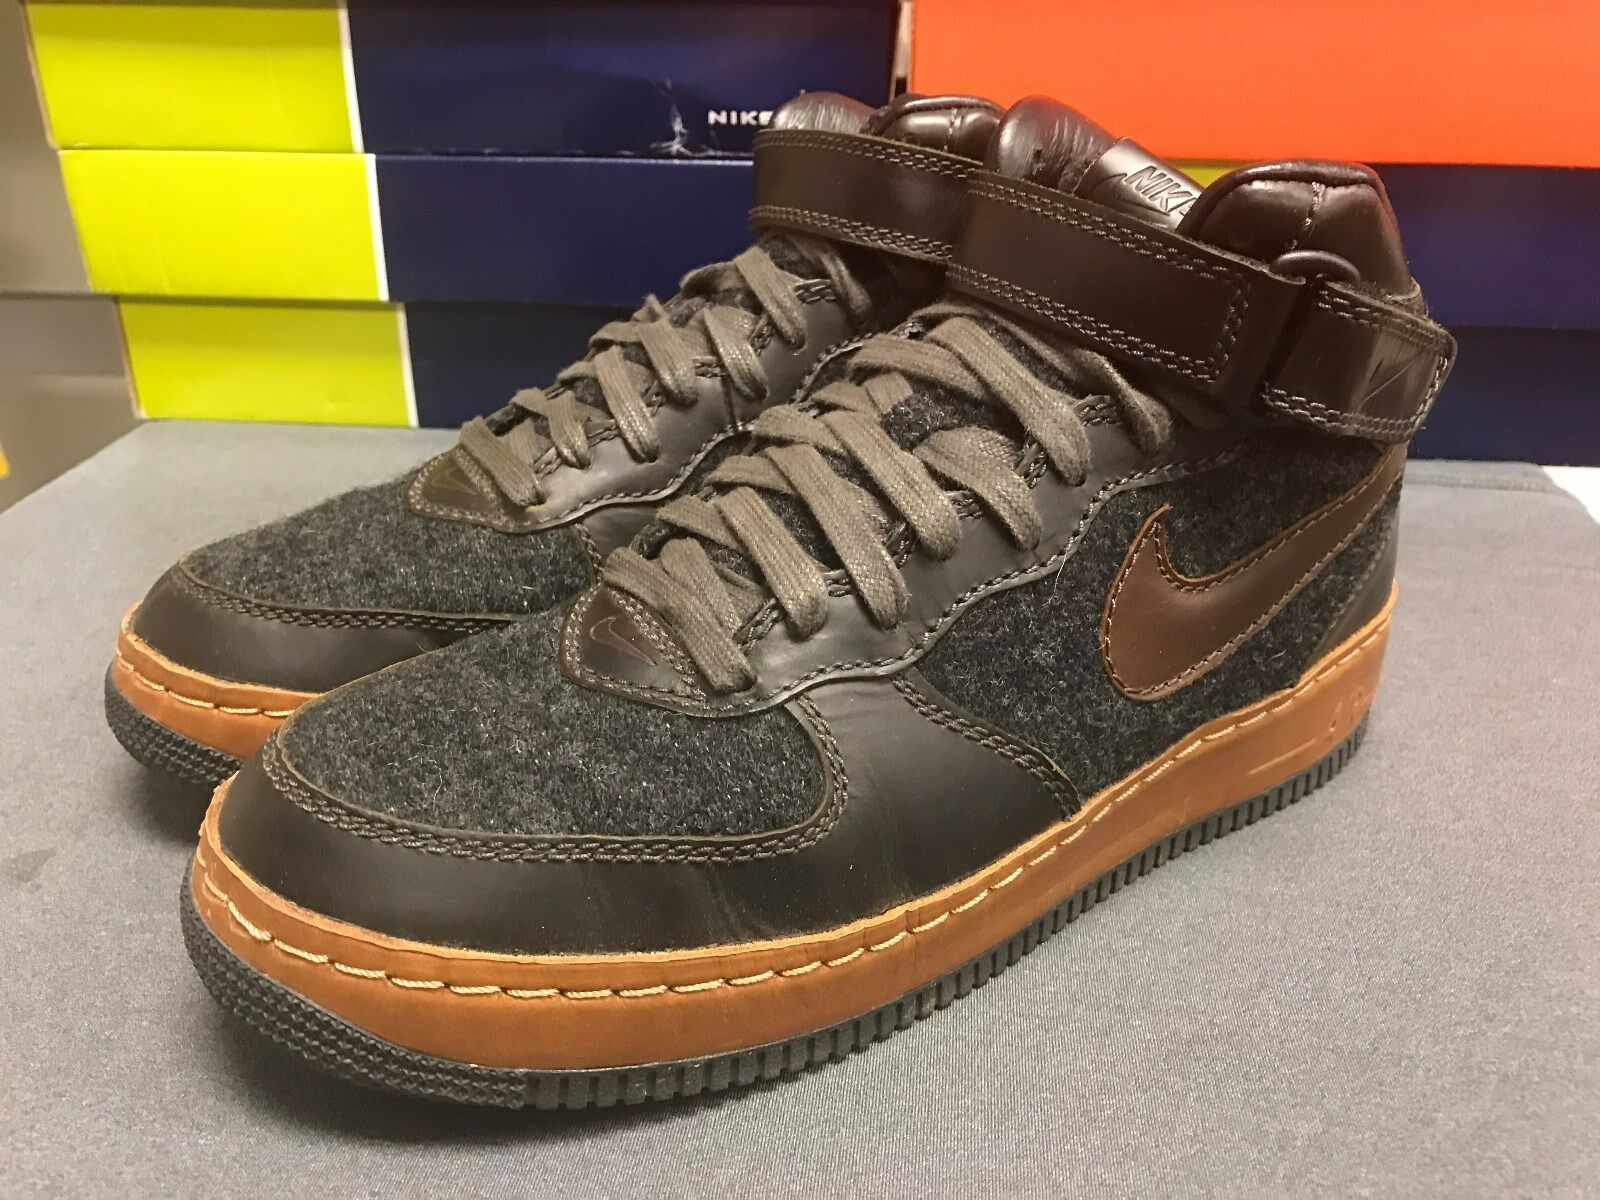 Sz 10.5 2004 NIKE AIR FORCE 1 MID INSIDE OUT 309379-001 Vintage